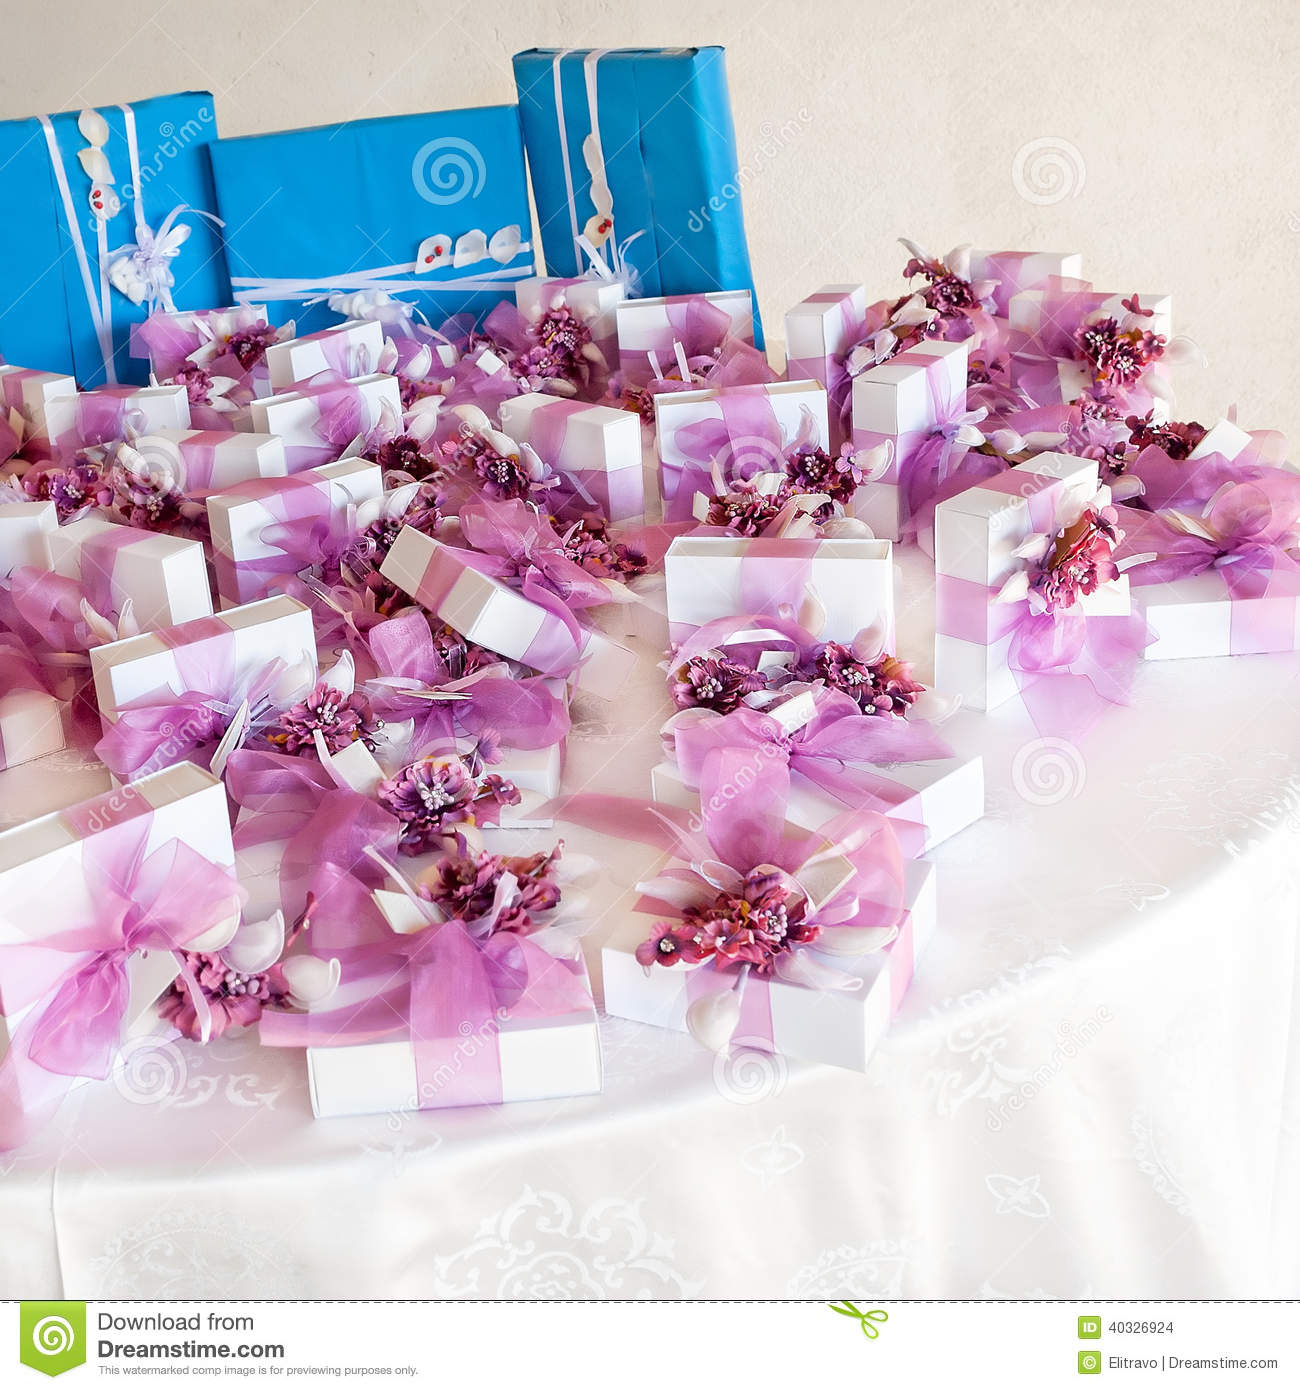 Wedding favors stock photo. Image of marriage, event - 40326924